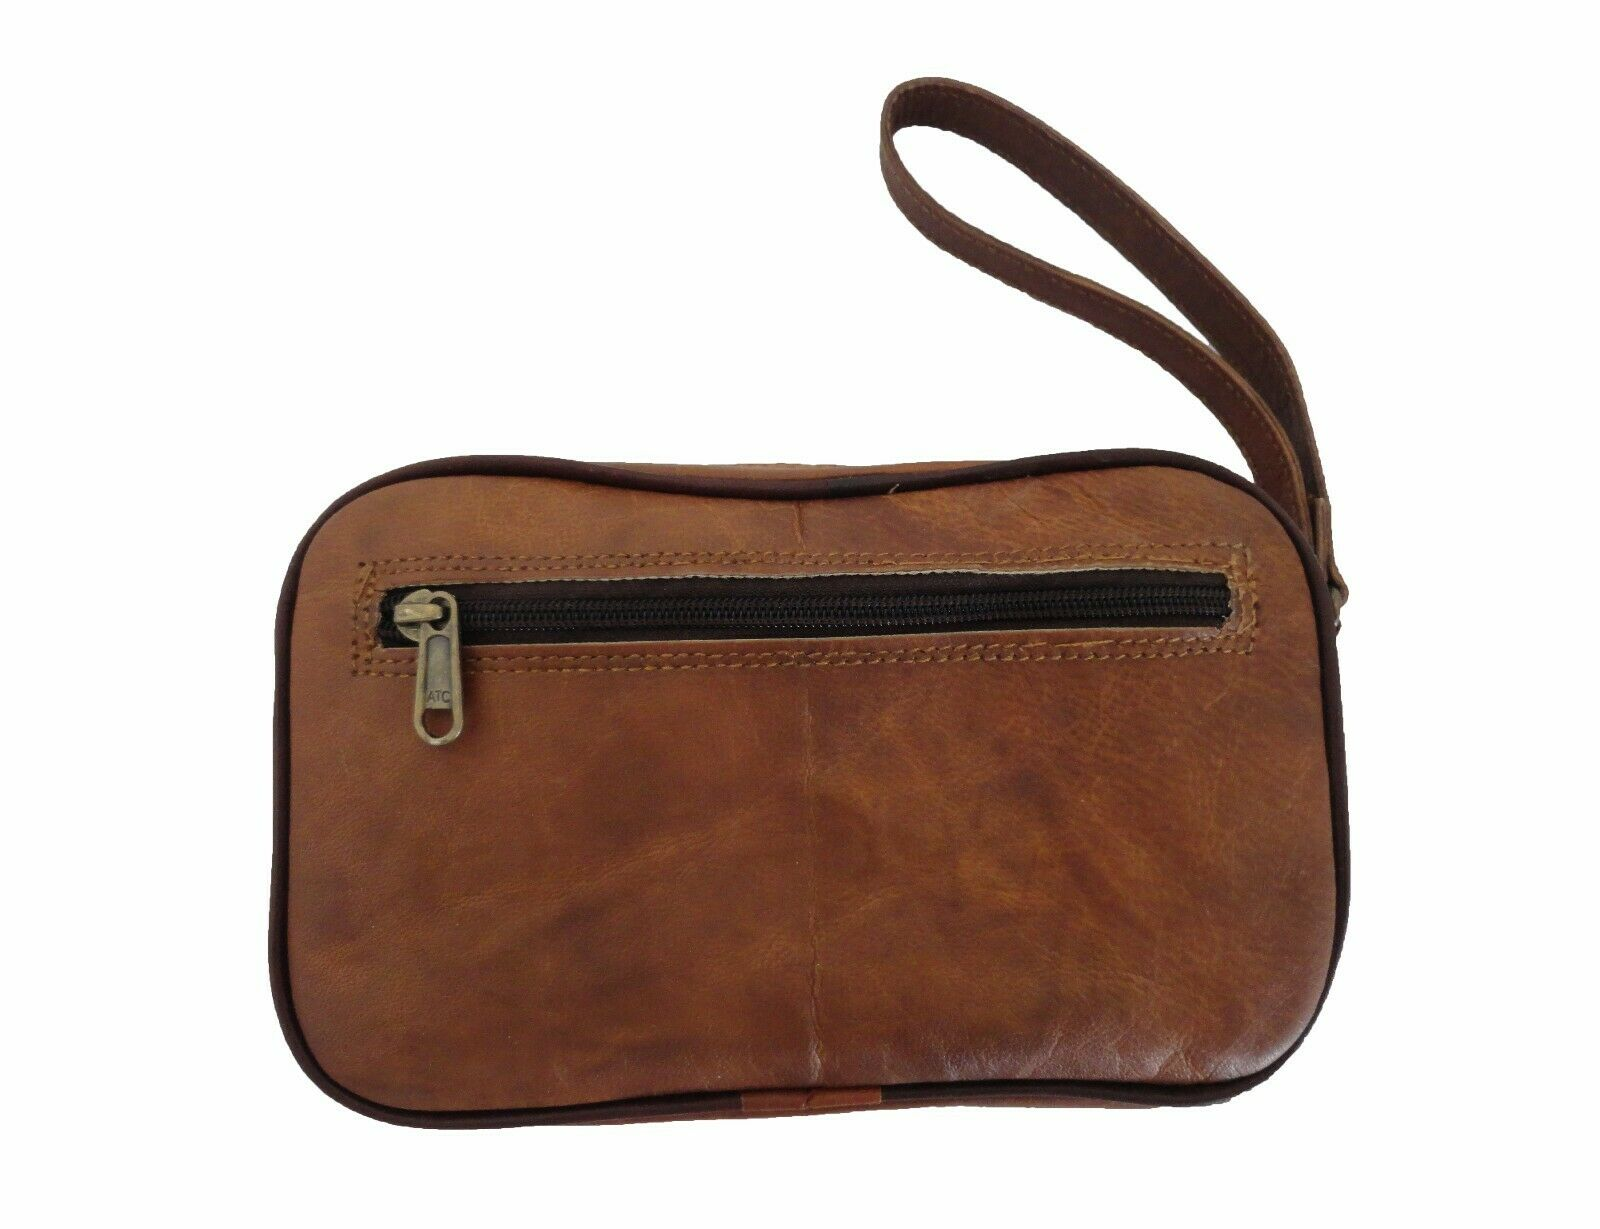 Leather Toiletry Bag Washbag Shaving Dopp Kit Grooming Cosmetic Pouch Travel  - $29.99